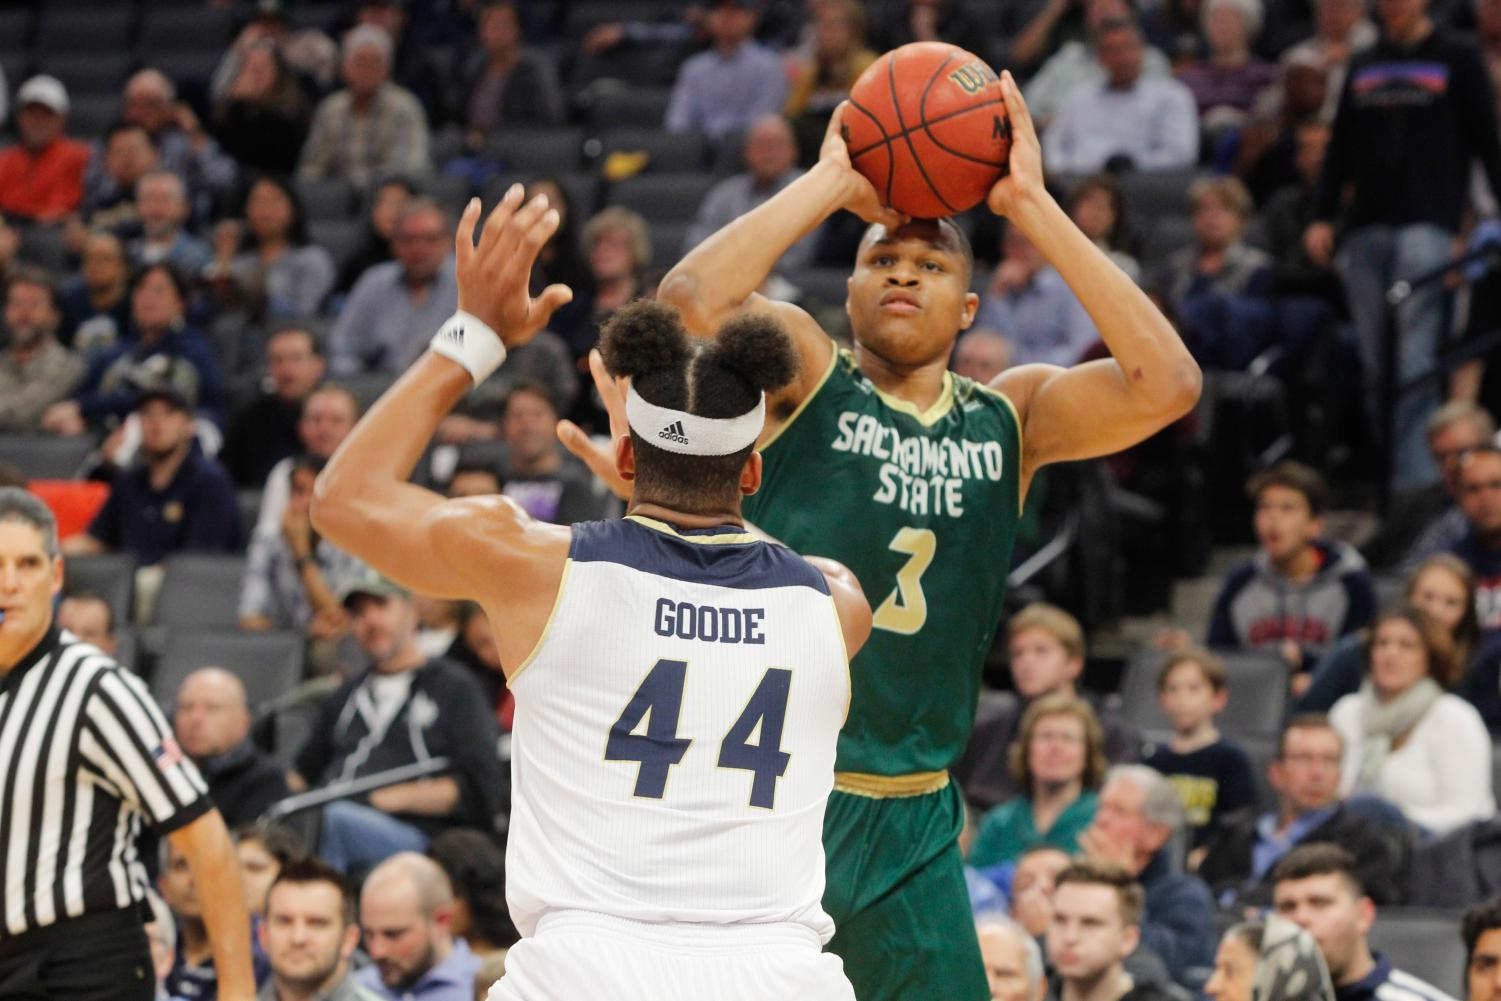 Sacramento State senior forward Justin Strings shoots the ball over UC Davis junior forward Garrison Goode Tuesday, Nov. 21 at the Golden 1 Center. Strings posted 17 points, 12 rebounds and 10 turnovers in a 64-47 loss against the Aggies.